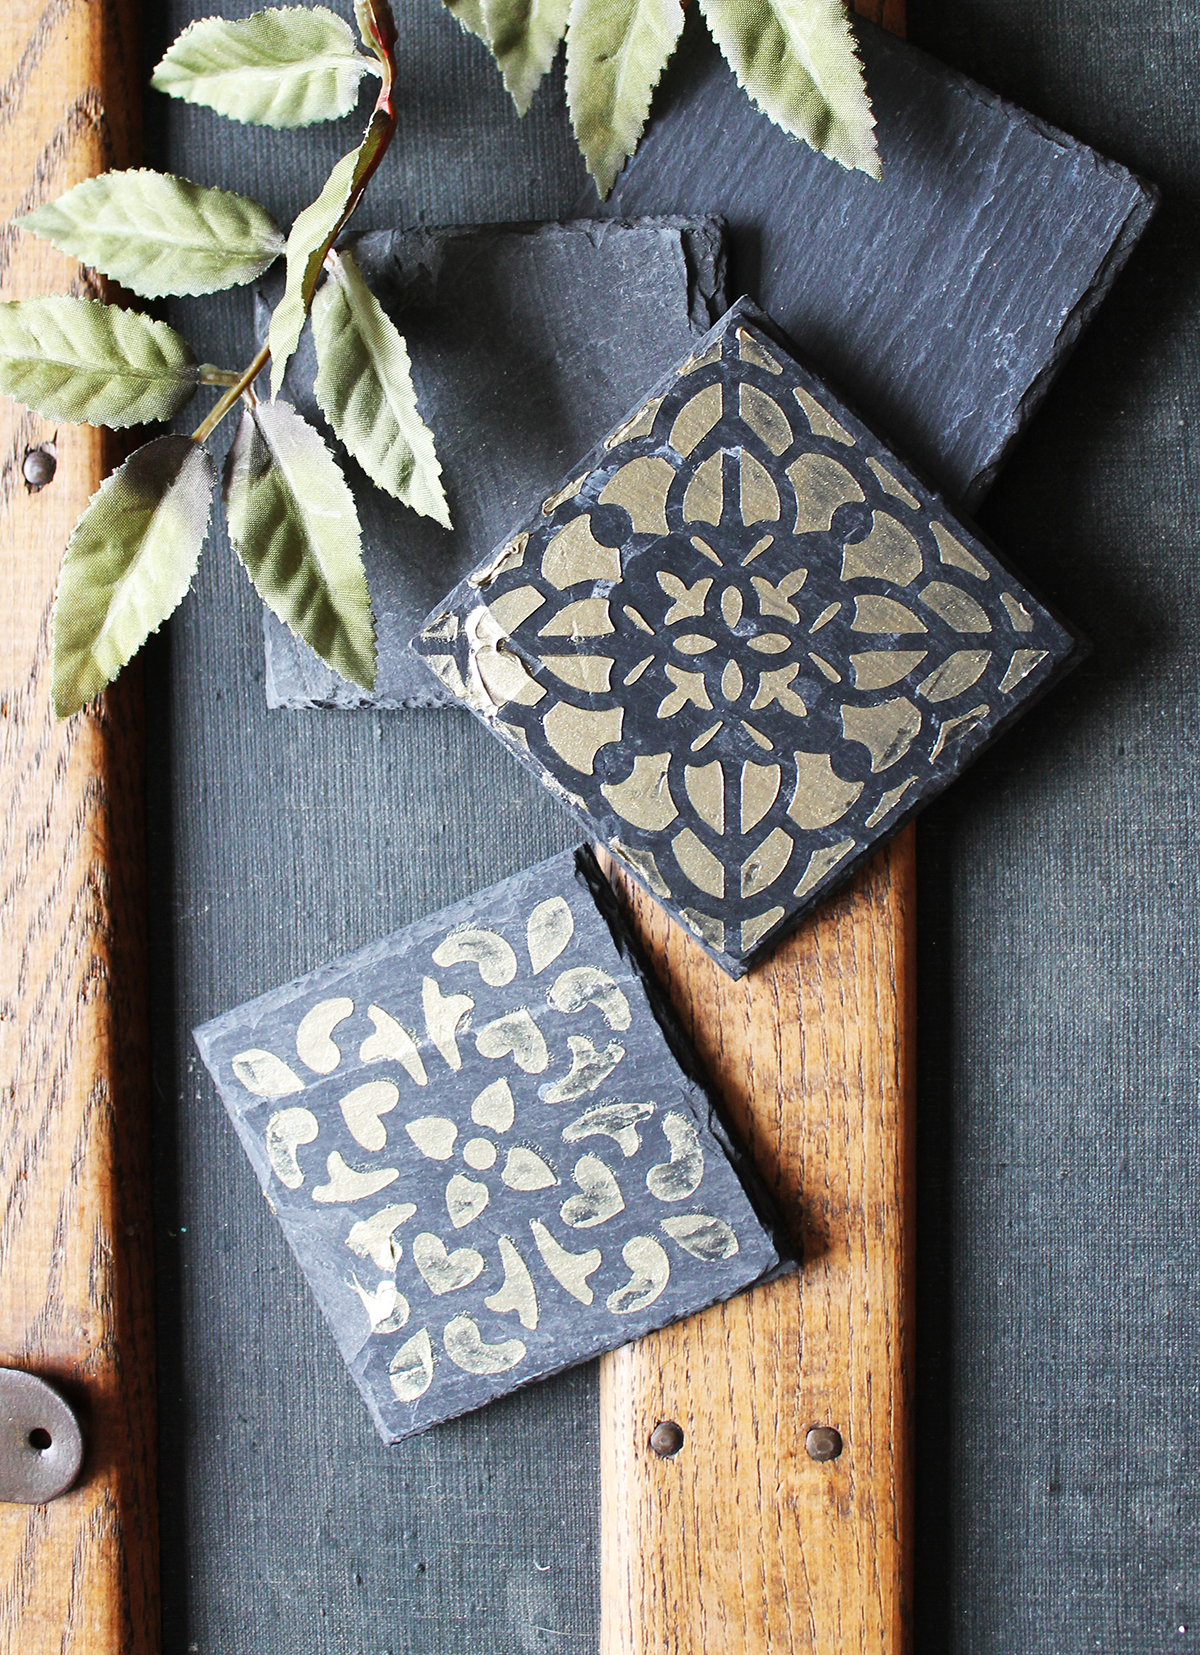 The Icing Paste can be used thicker or thinner, depending on if you want a touch of dimension. It dries permanently on porous surfaces, such as slate or untreated soapstone tile. The paste went over the stencil so smoothly and it wipes right off the stencil paper for easy reuse.